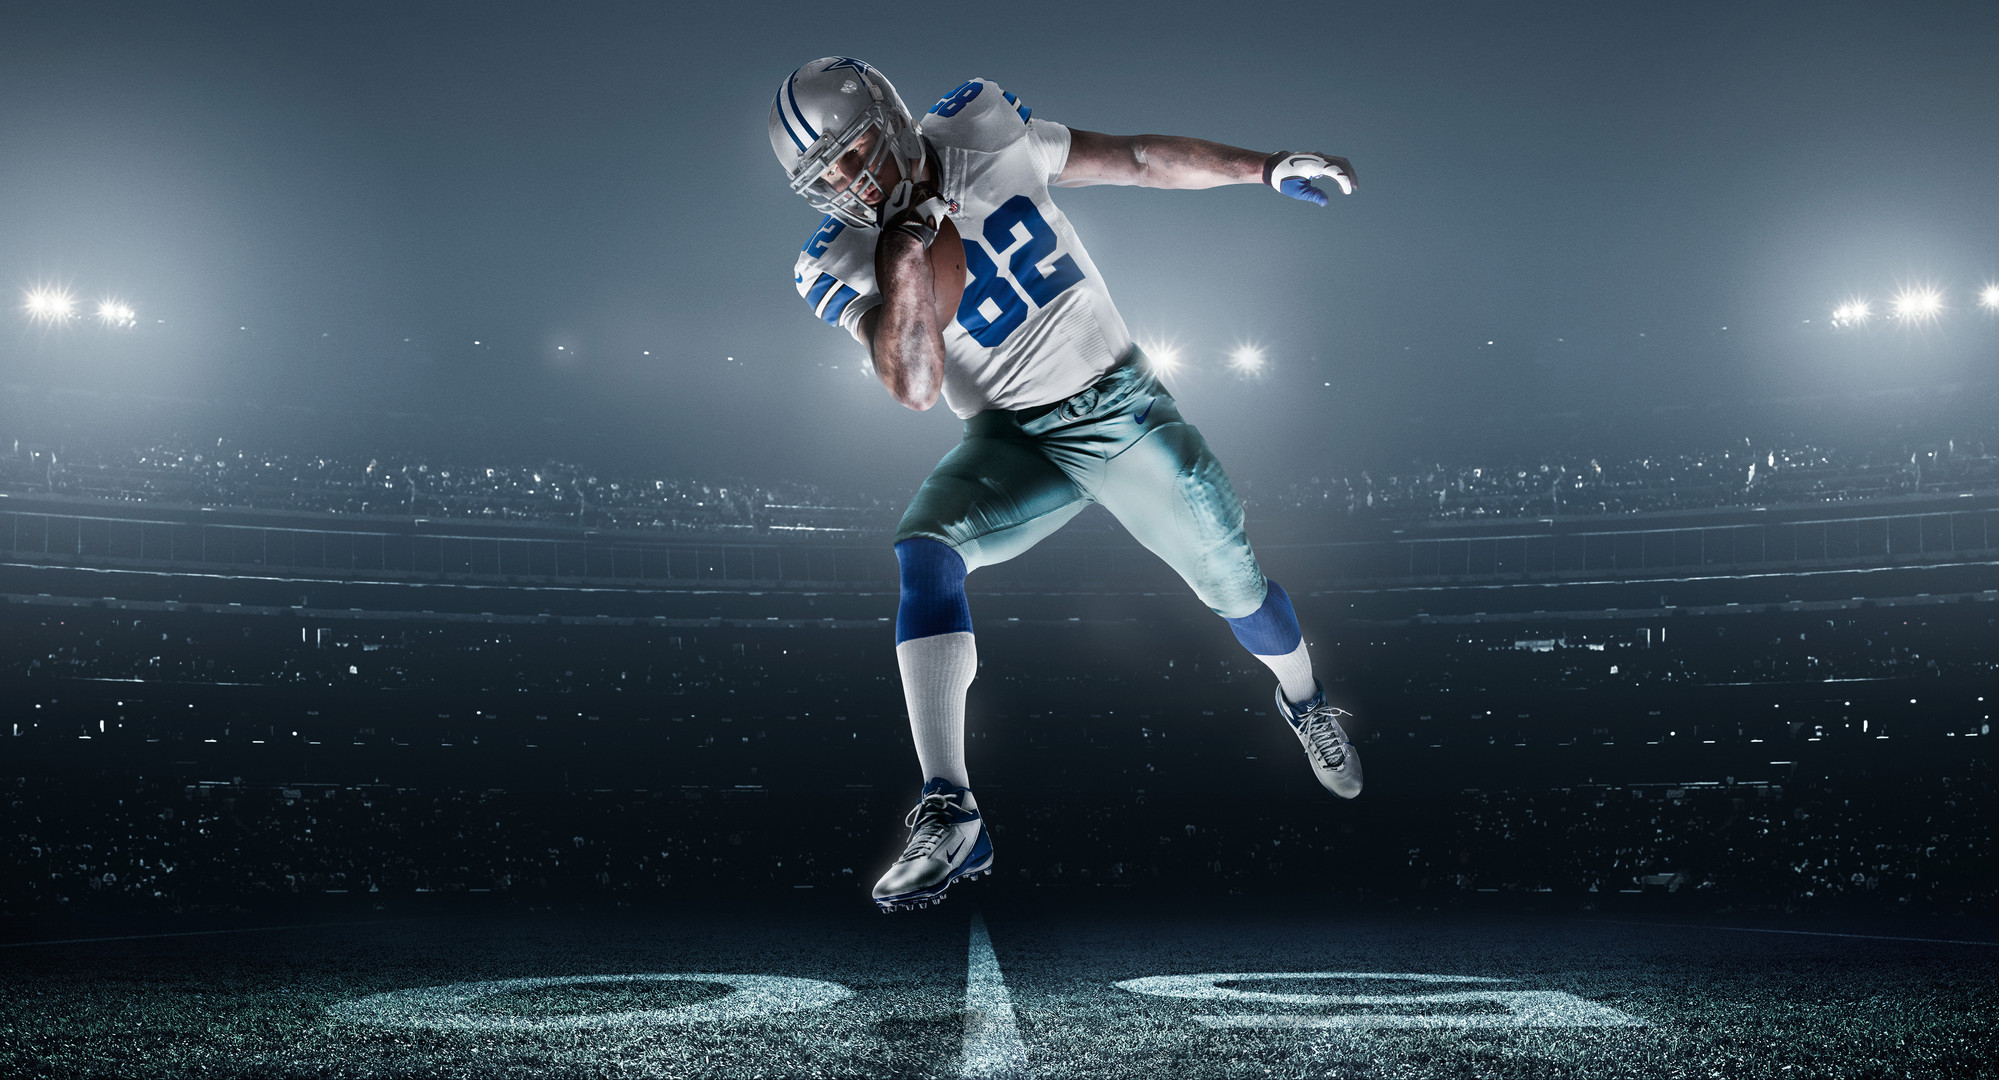 FA12_AT_WITTEN_NFL_Cowboys Uniform_003_T